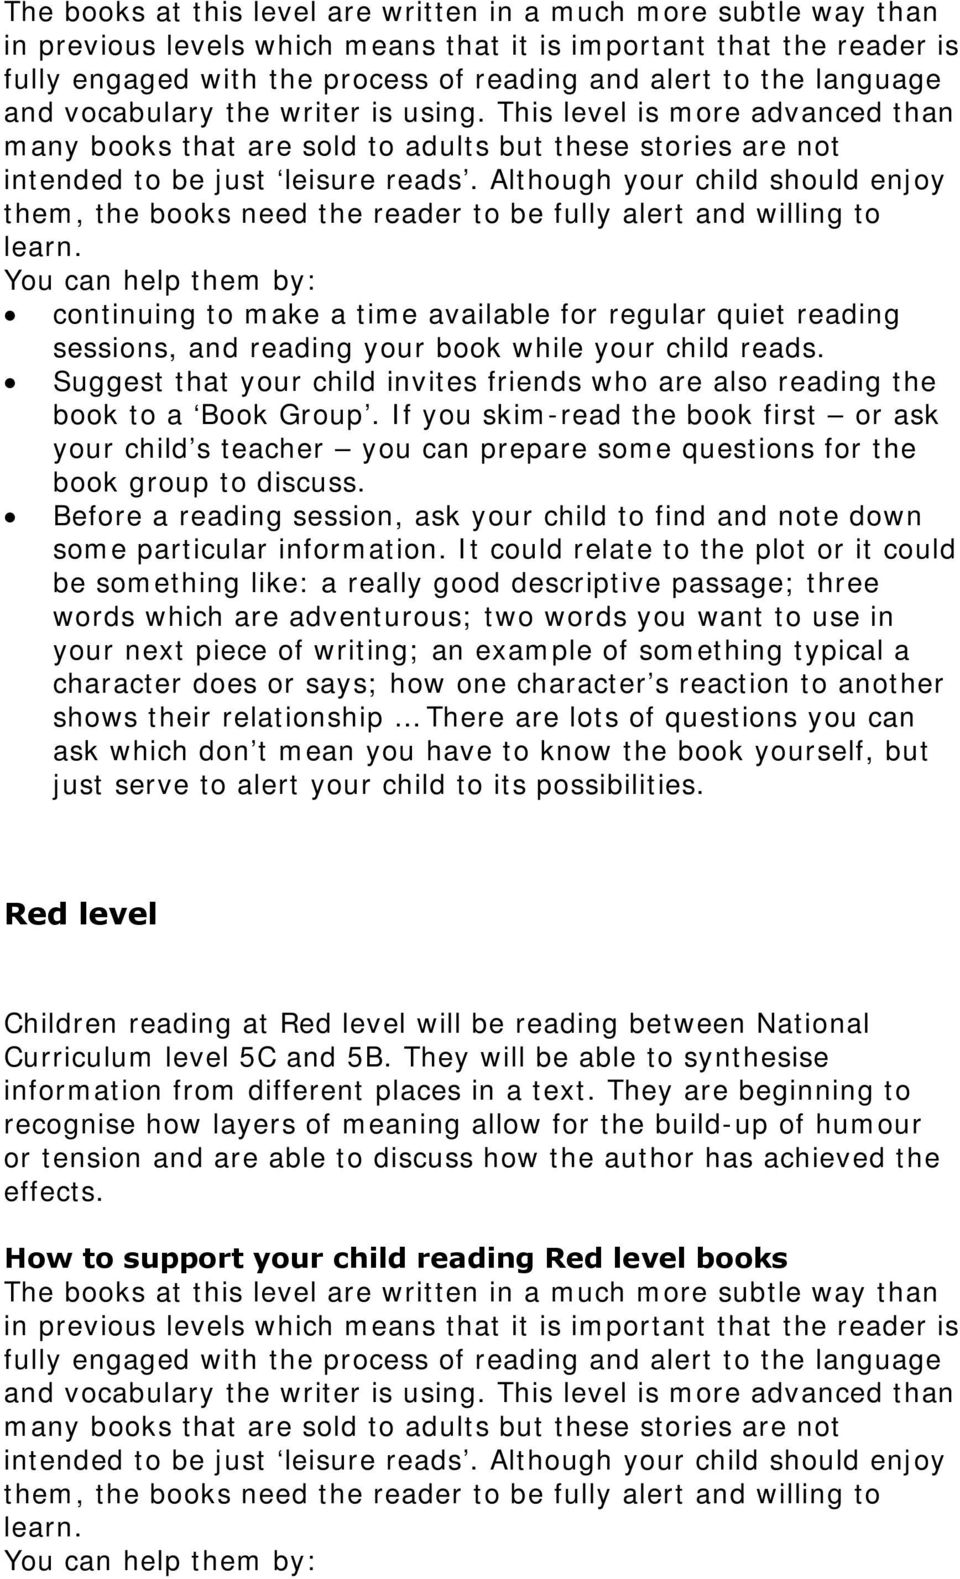 Although your child should enjoy them, the books need the reader to be fully alert and willing to learn.